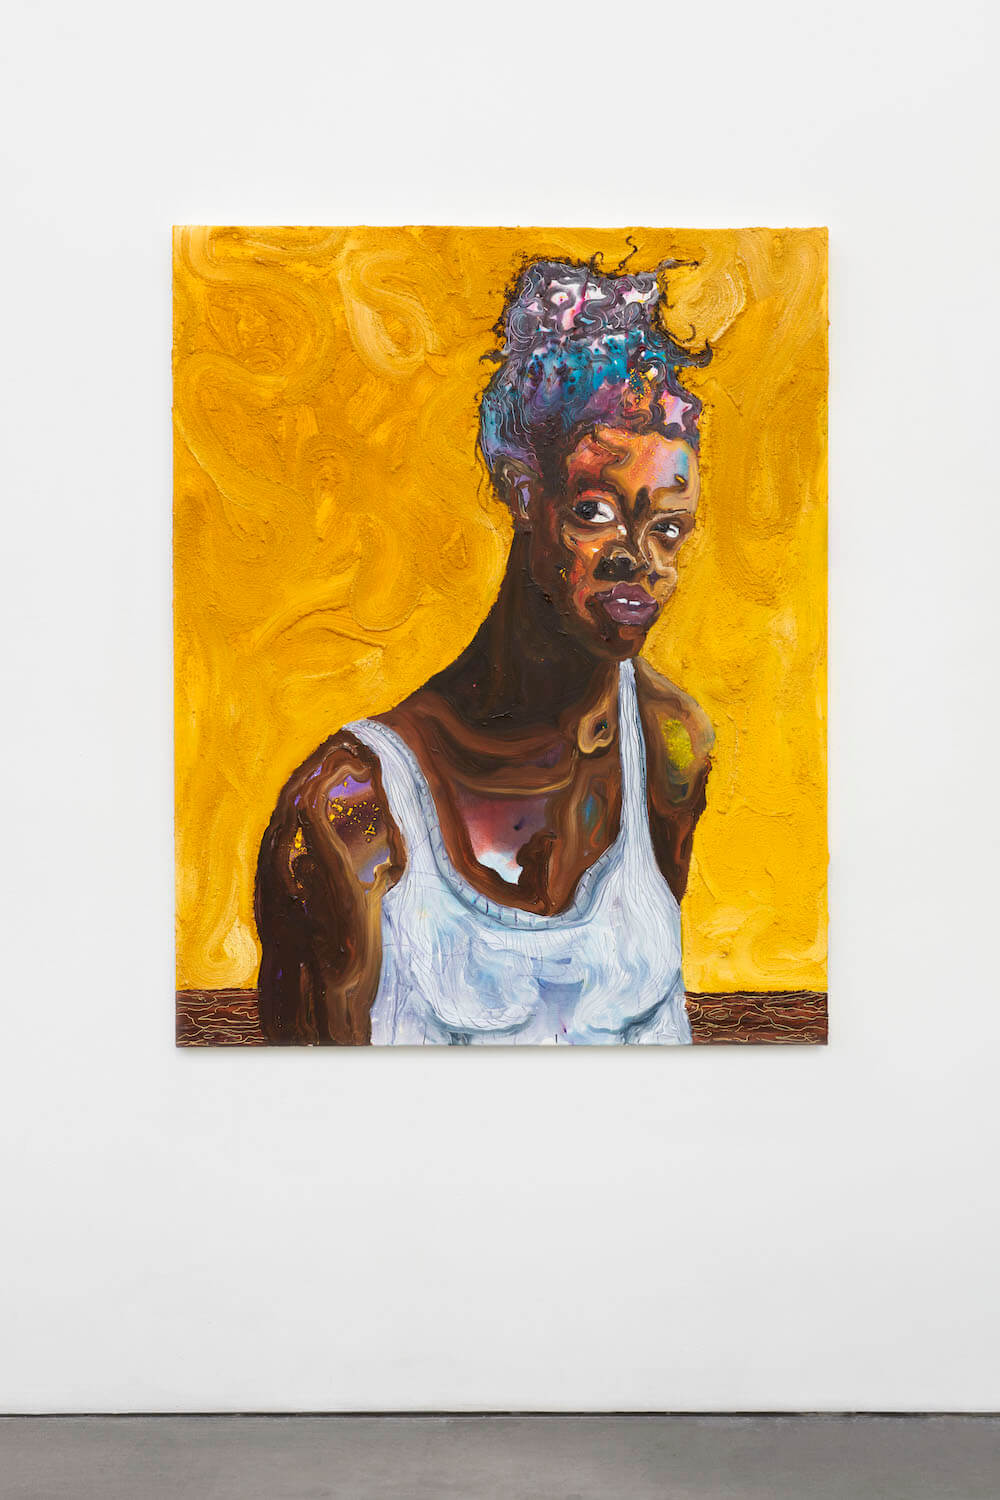 a painting by Ludovic Nkoth, there is one central figure shown from the chest up, she is a black woman in a white tank top, color shines through her hair and chest from an underpainting, the background is swirls of mustard yellow paint mixed with sand